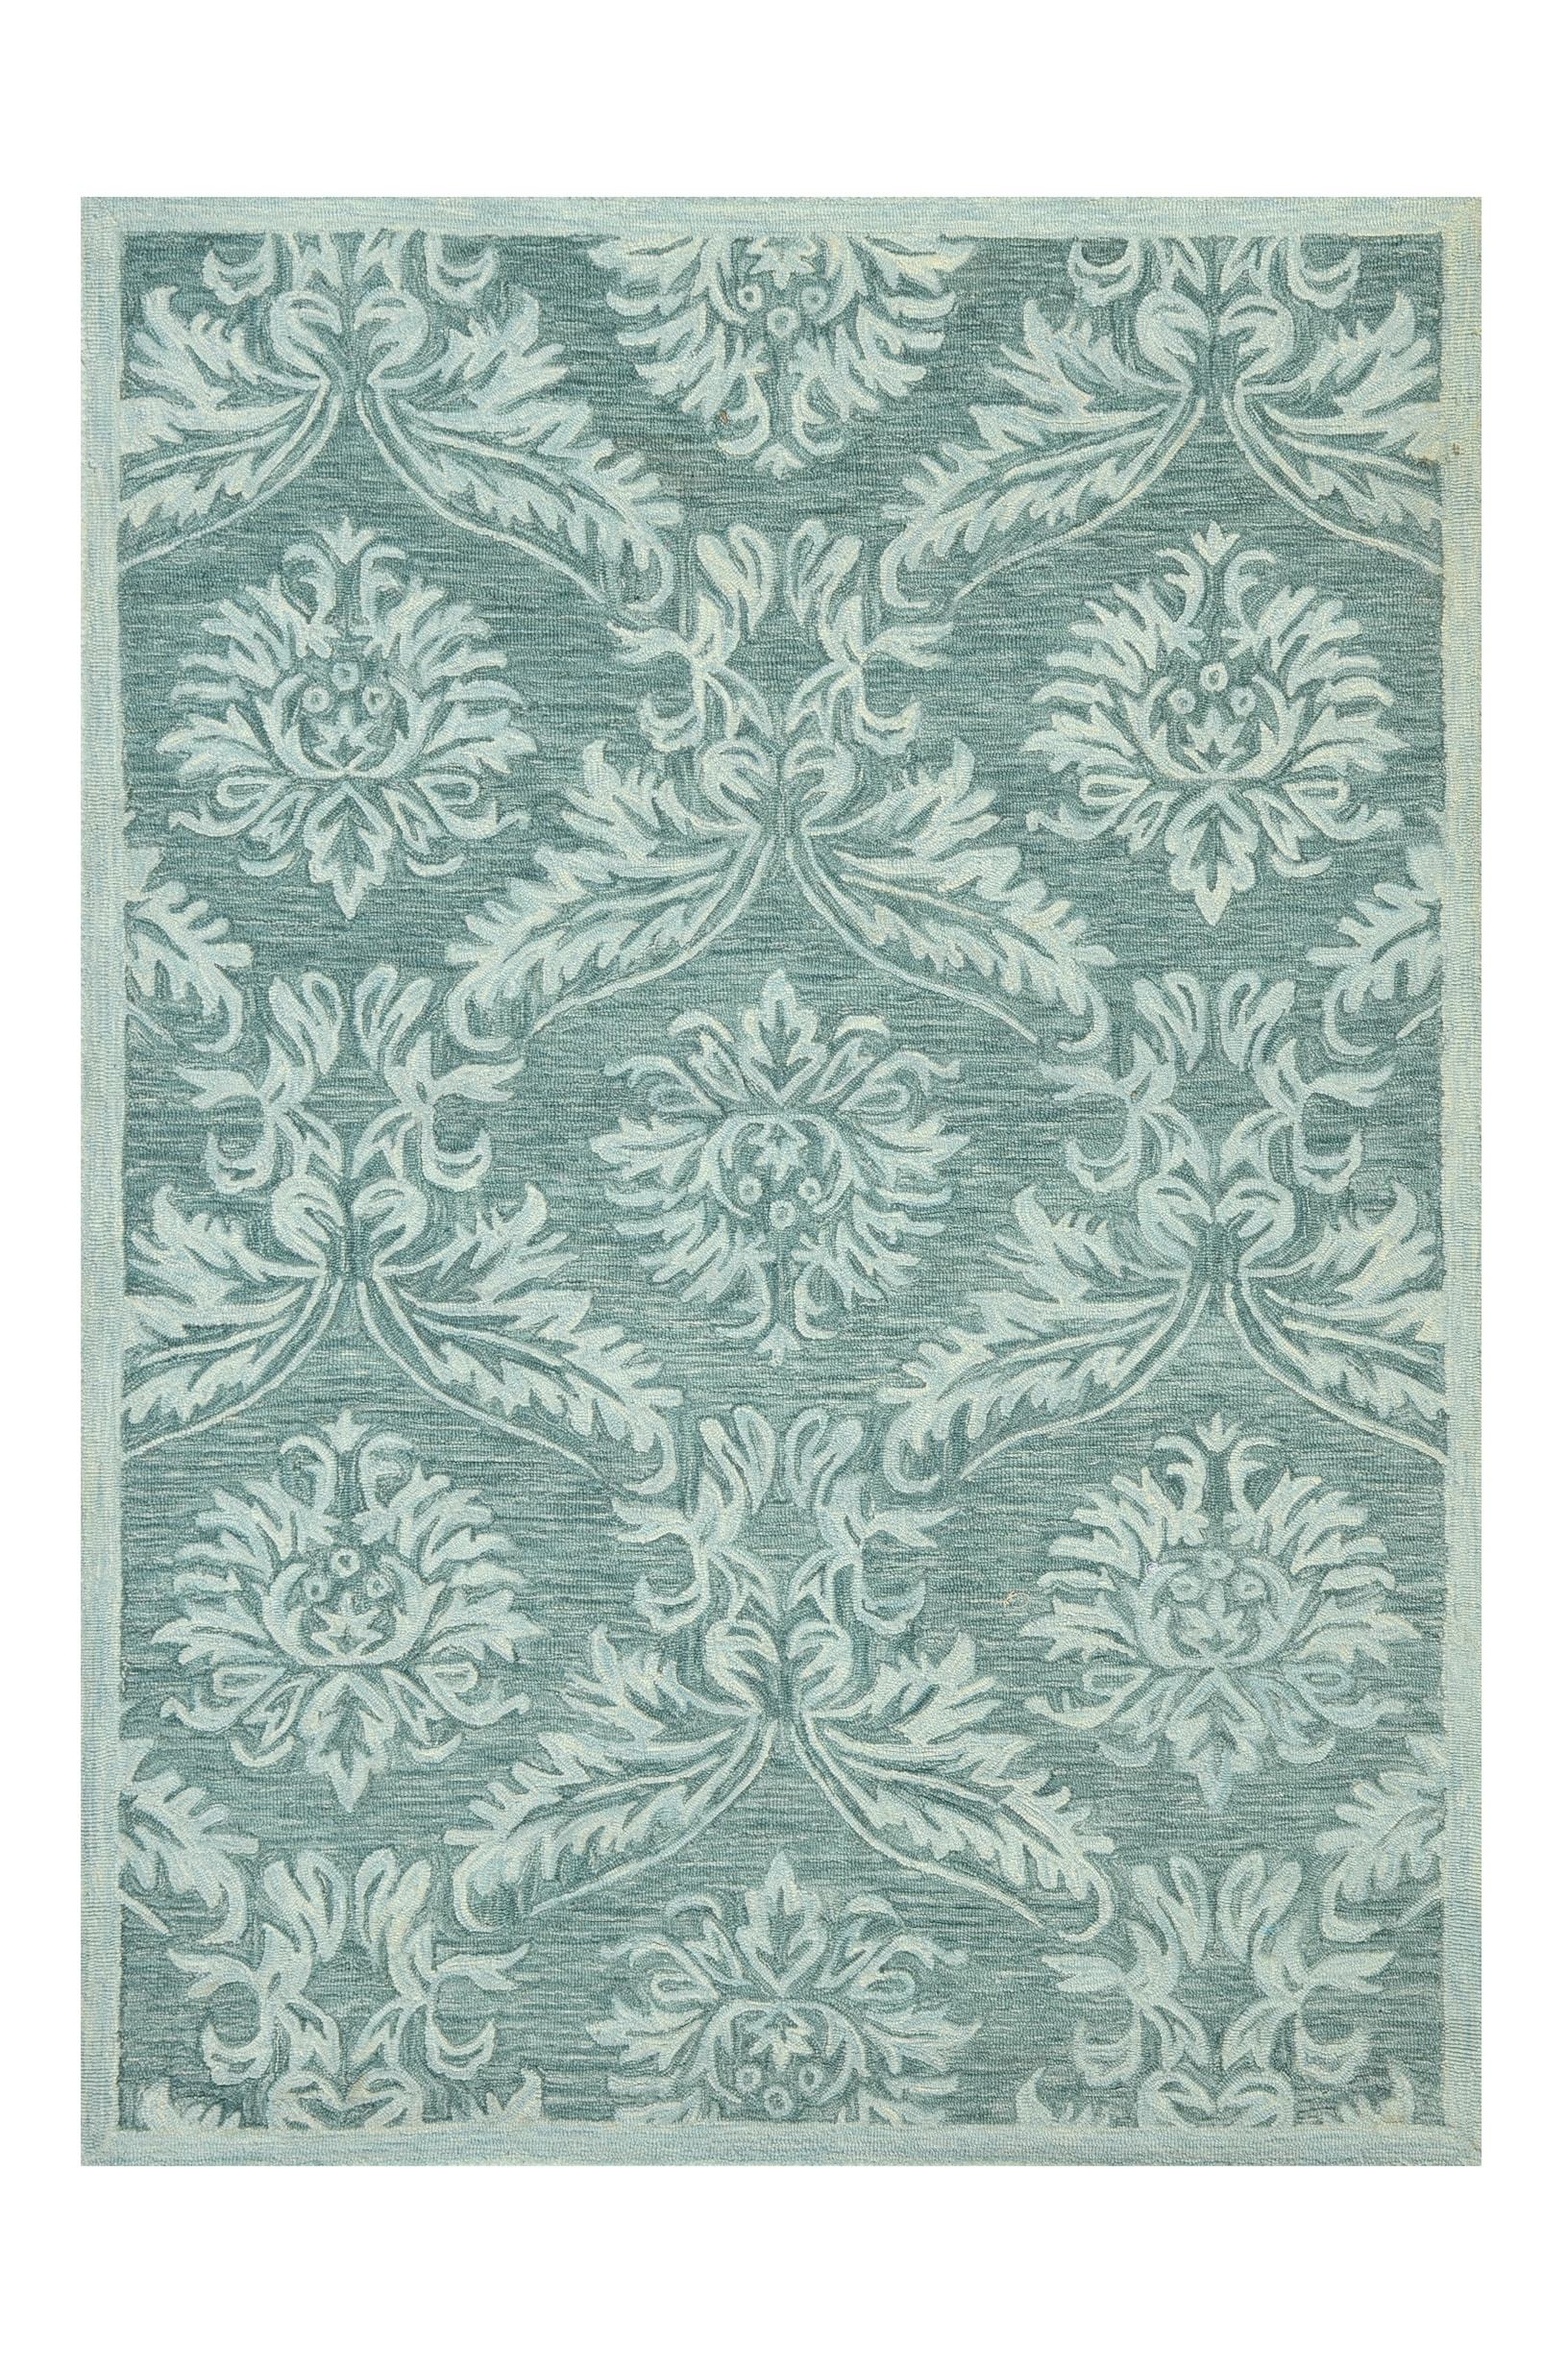 Verdure Hand Tufted Rug by House of Rugs - Home Artisan